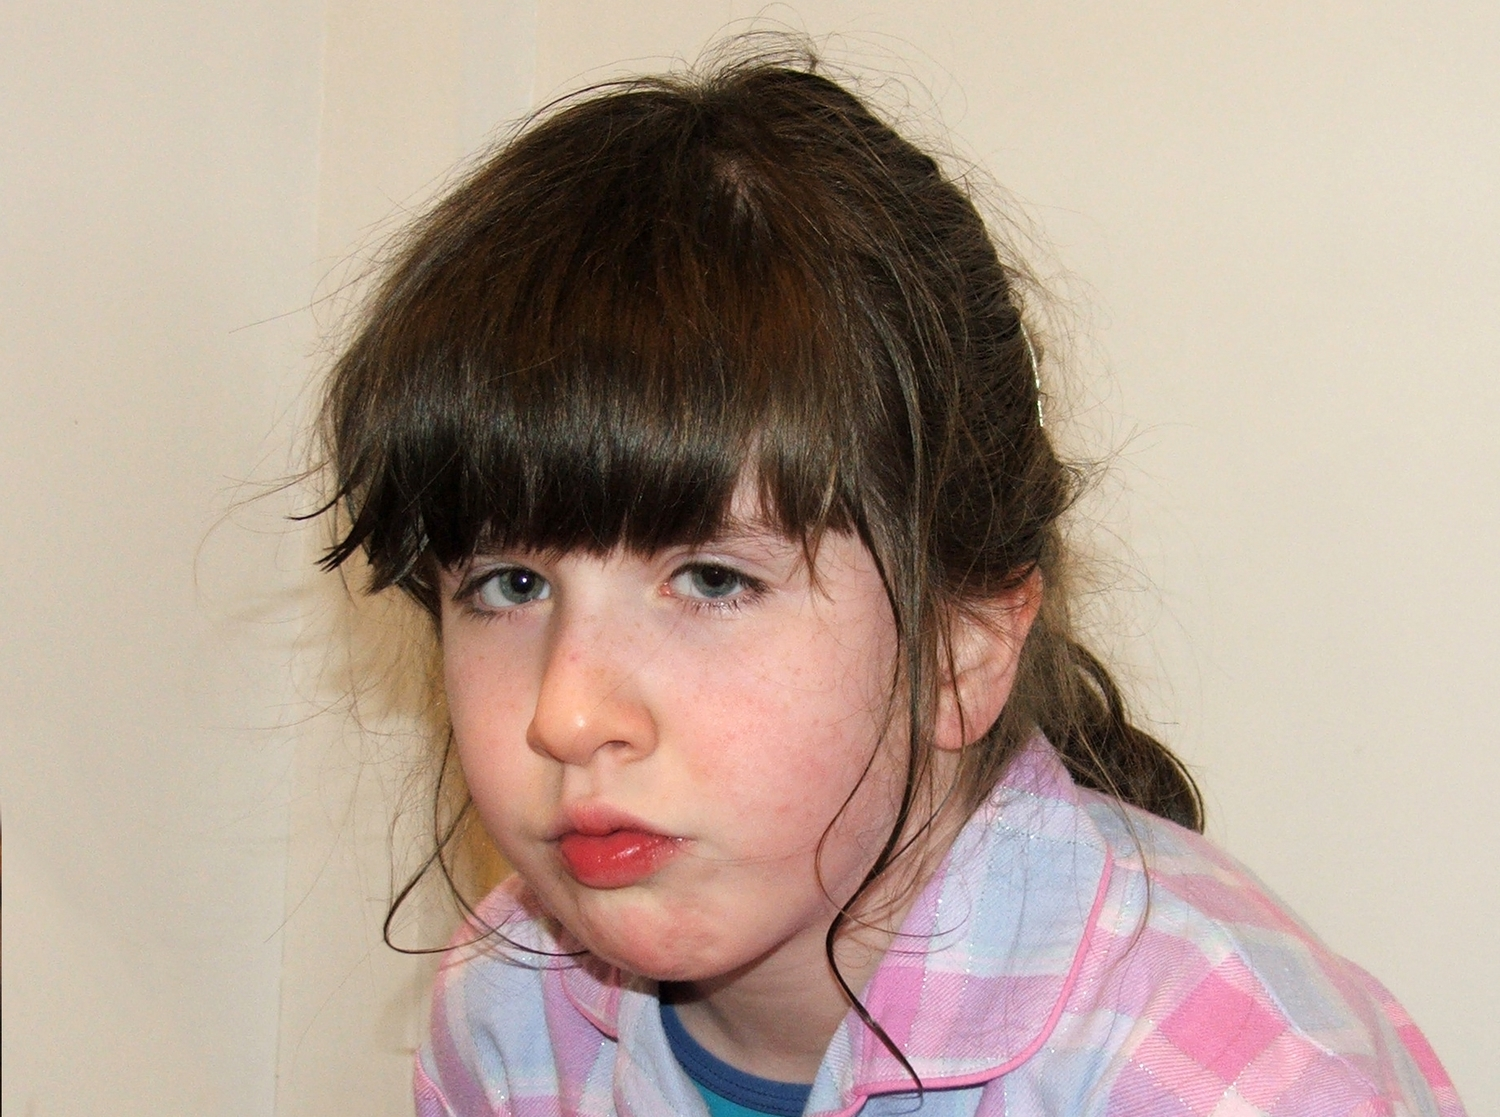 Katie's family have struggled to find a suitable care environment for her throughout her life